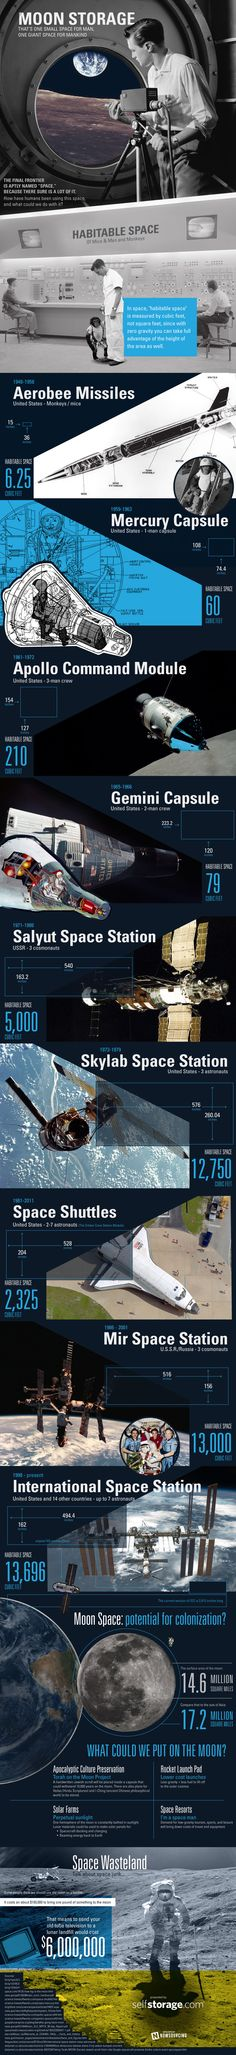 Storing stuff on the moon could be pricey, but vacationing there could be doable.Check out this infographic for more. in Science / Fiction Space Tourism, Space Travel, Monkey In Space, Moon Projects, Self Storage, Space And Astronomy, Our Solar System, Data Visualization, Solar Power